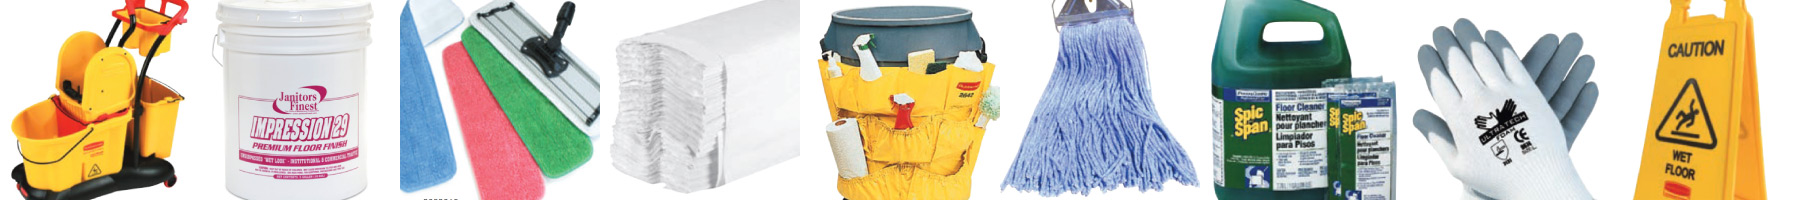 Janitorial Supplies Products